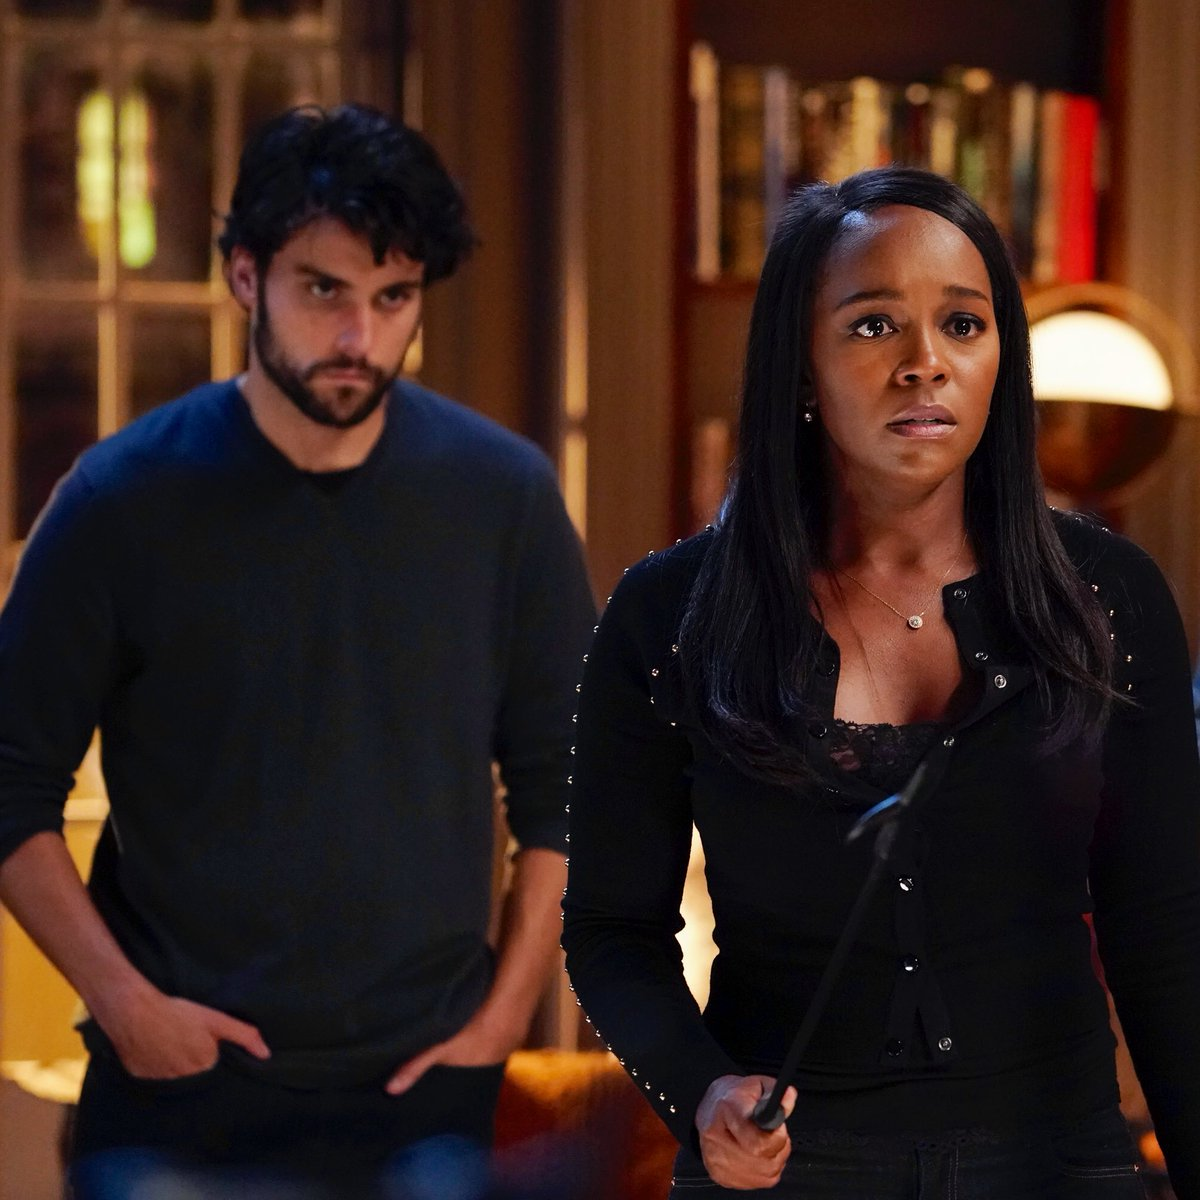 the reasons why Annalise chose Connor and Michaela to be part of K5 will be revealed in season 6 #HTGAWM  #TGIT<br>http://pic.twitter.com/Vqek3mg3eI